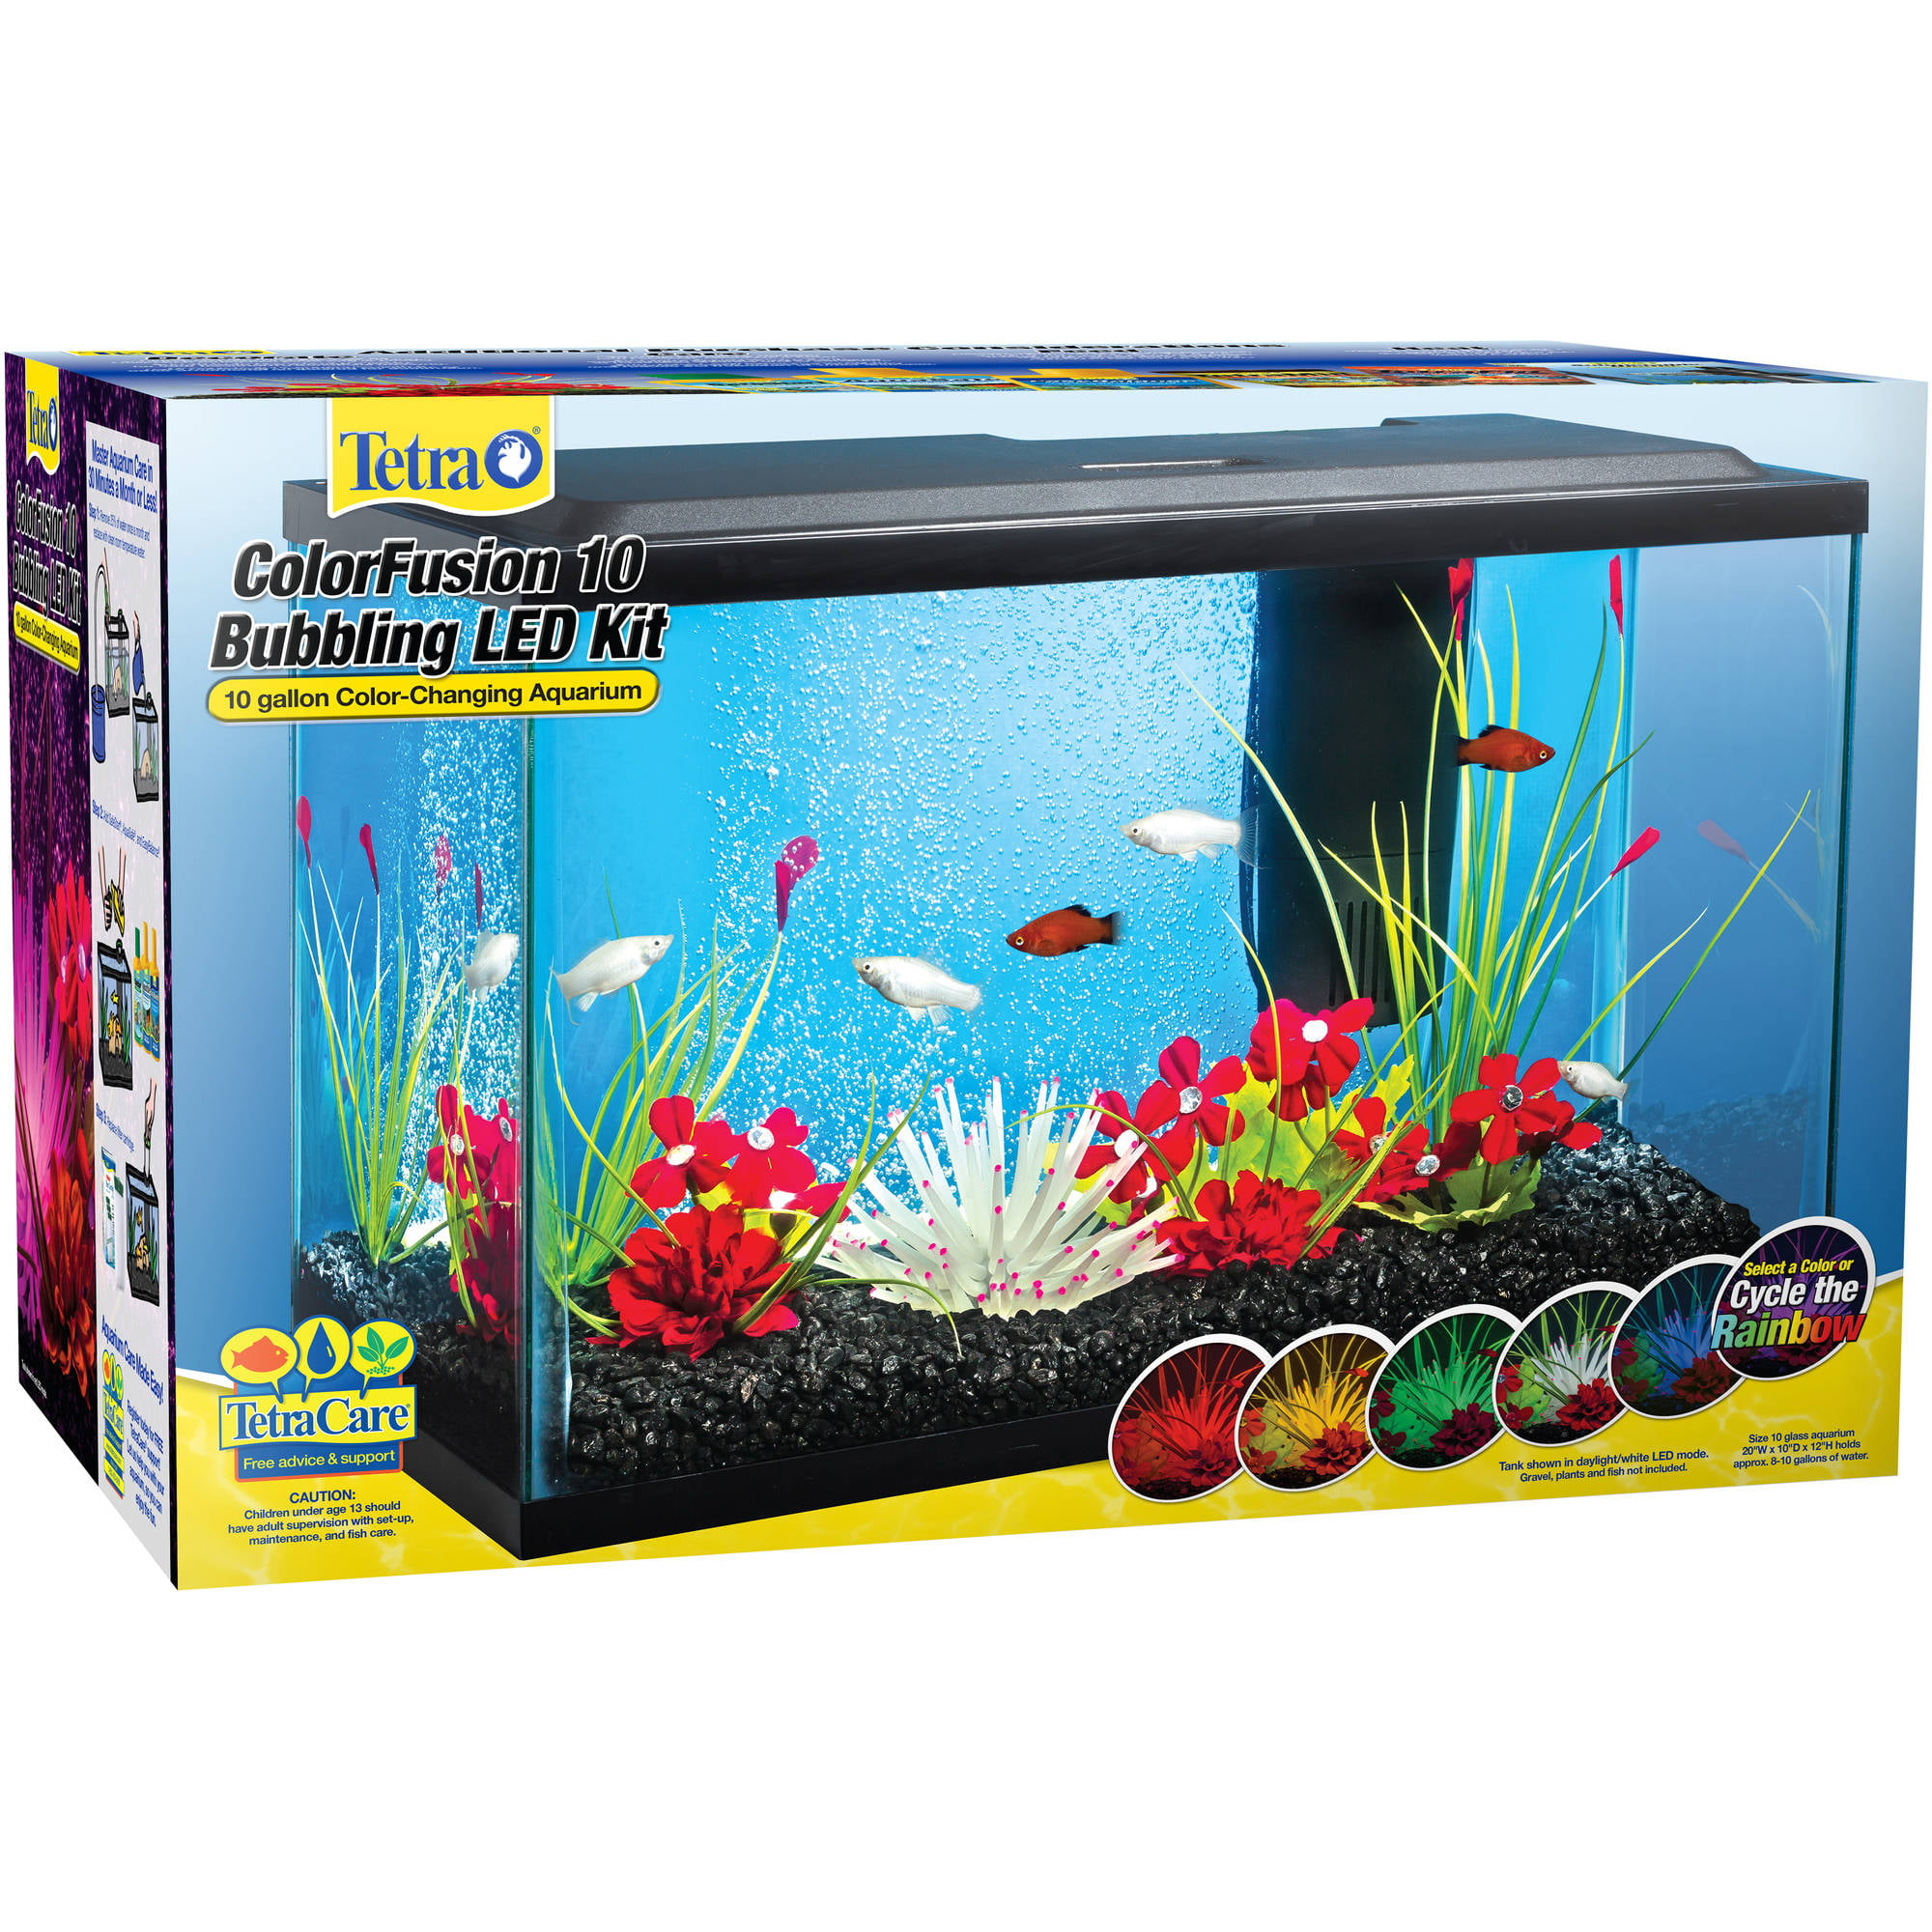 Tetra aquarium 10 gallon tank fish kit led light colors for Tetra fish tank